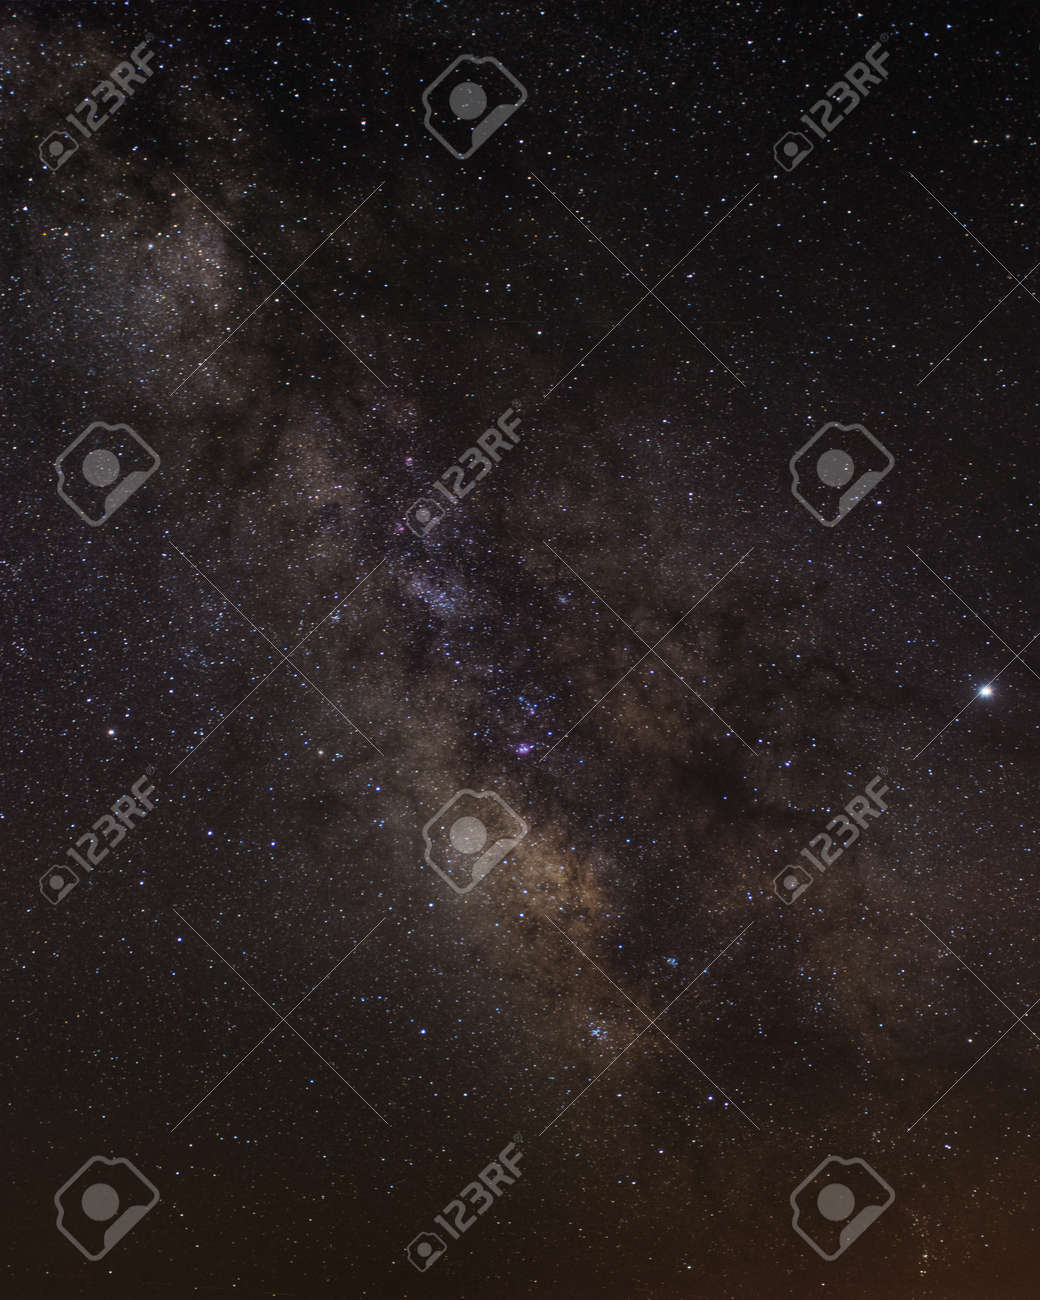 Sagittarius A is the Black Hole at the center of the Milky Way showed here with Juno on the right - 154977025